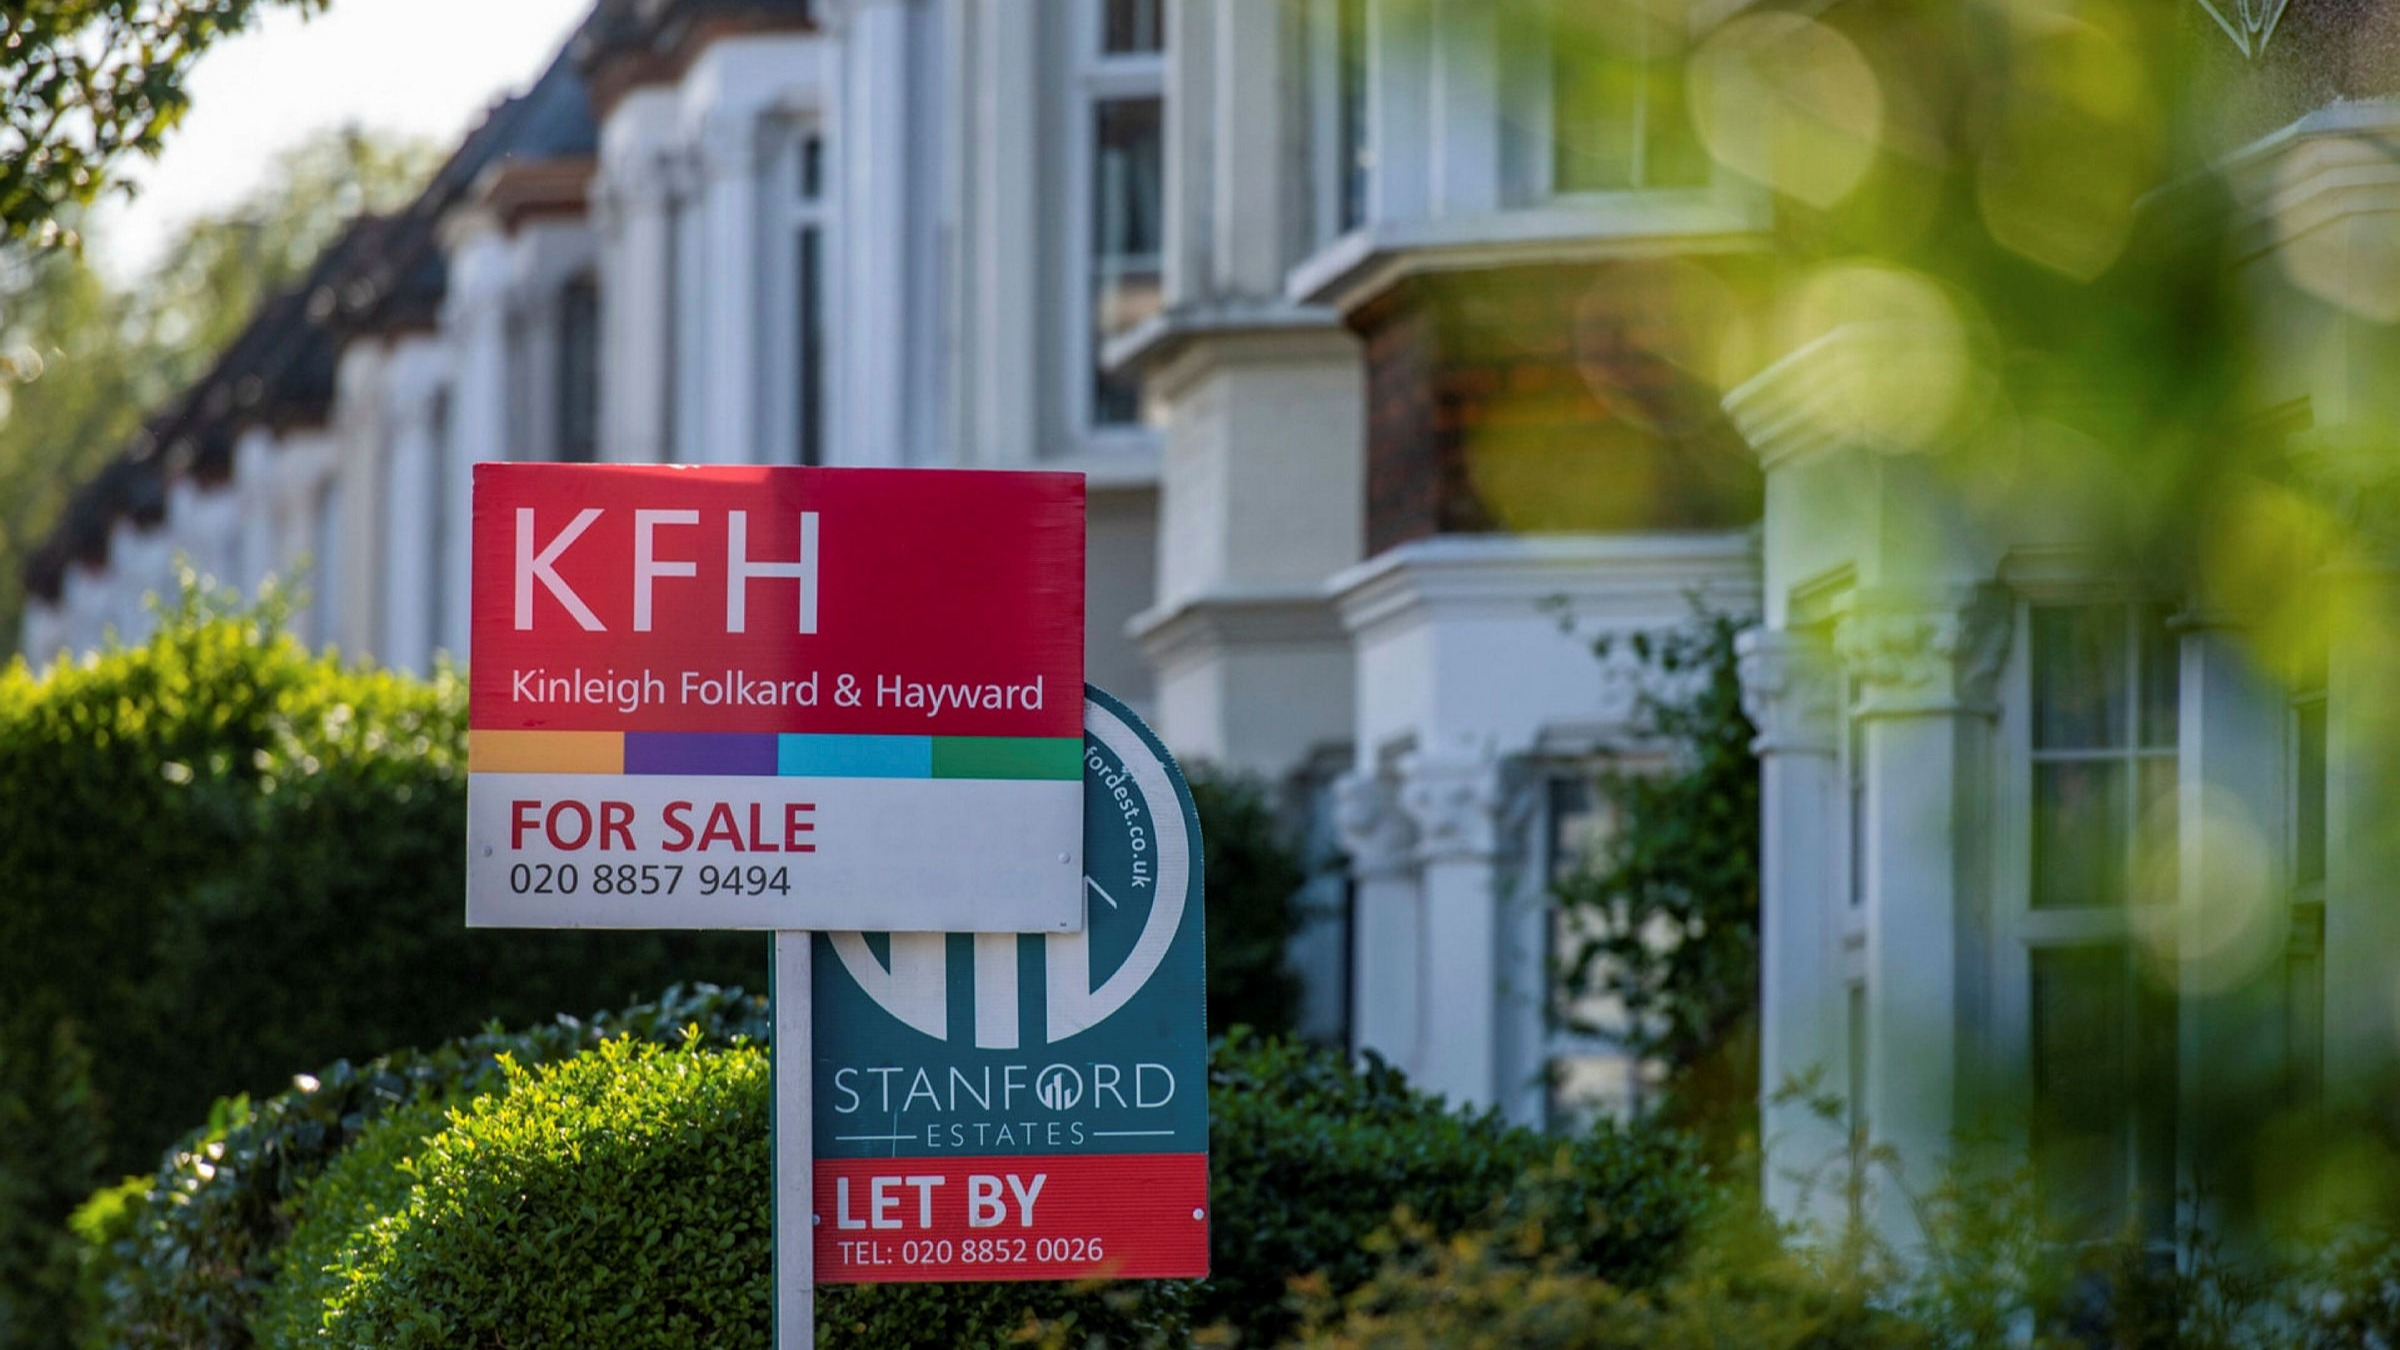 Median house prices in the UK rises by £ 25,000 in a year.